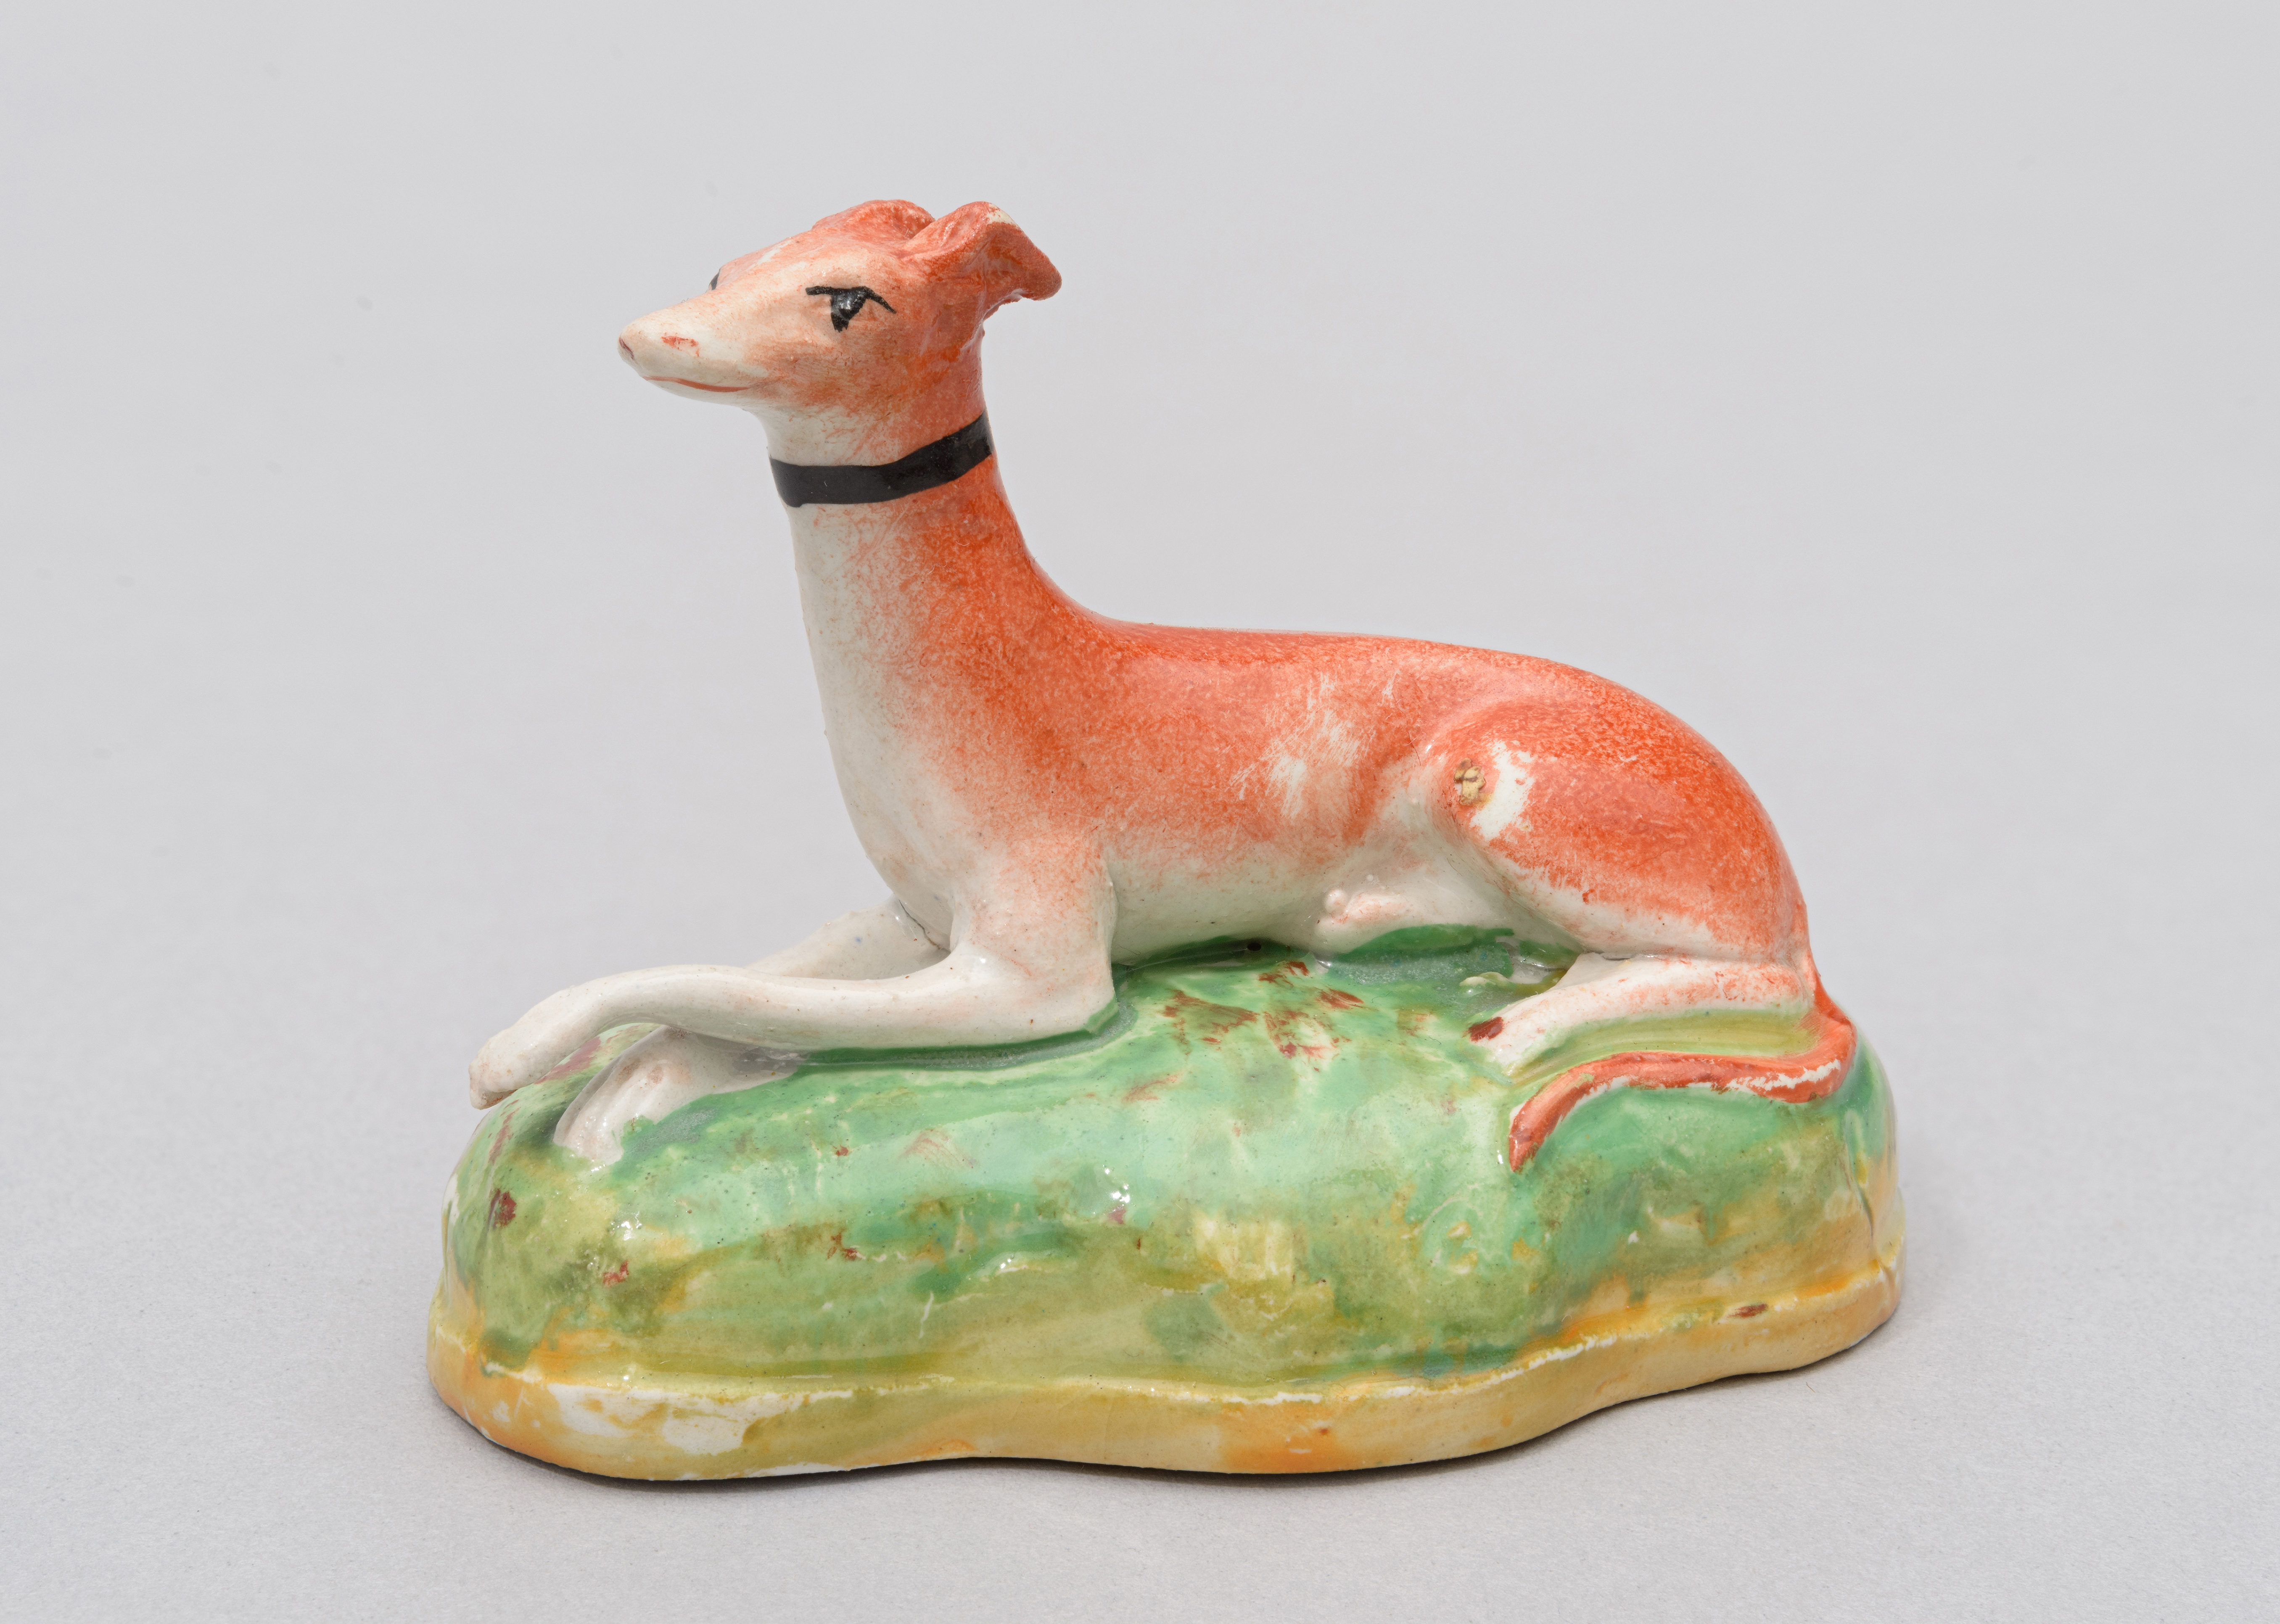 A ceramic figure of a greyhound dog with red coat and a black collar. The greyhound is sitting on a green grassy patch.